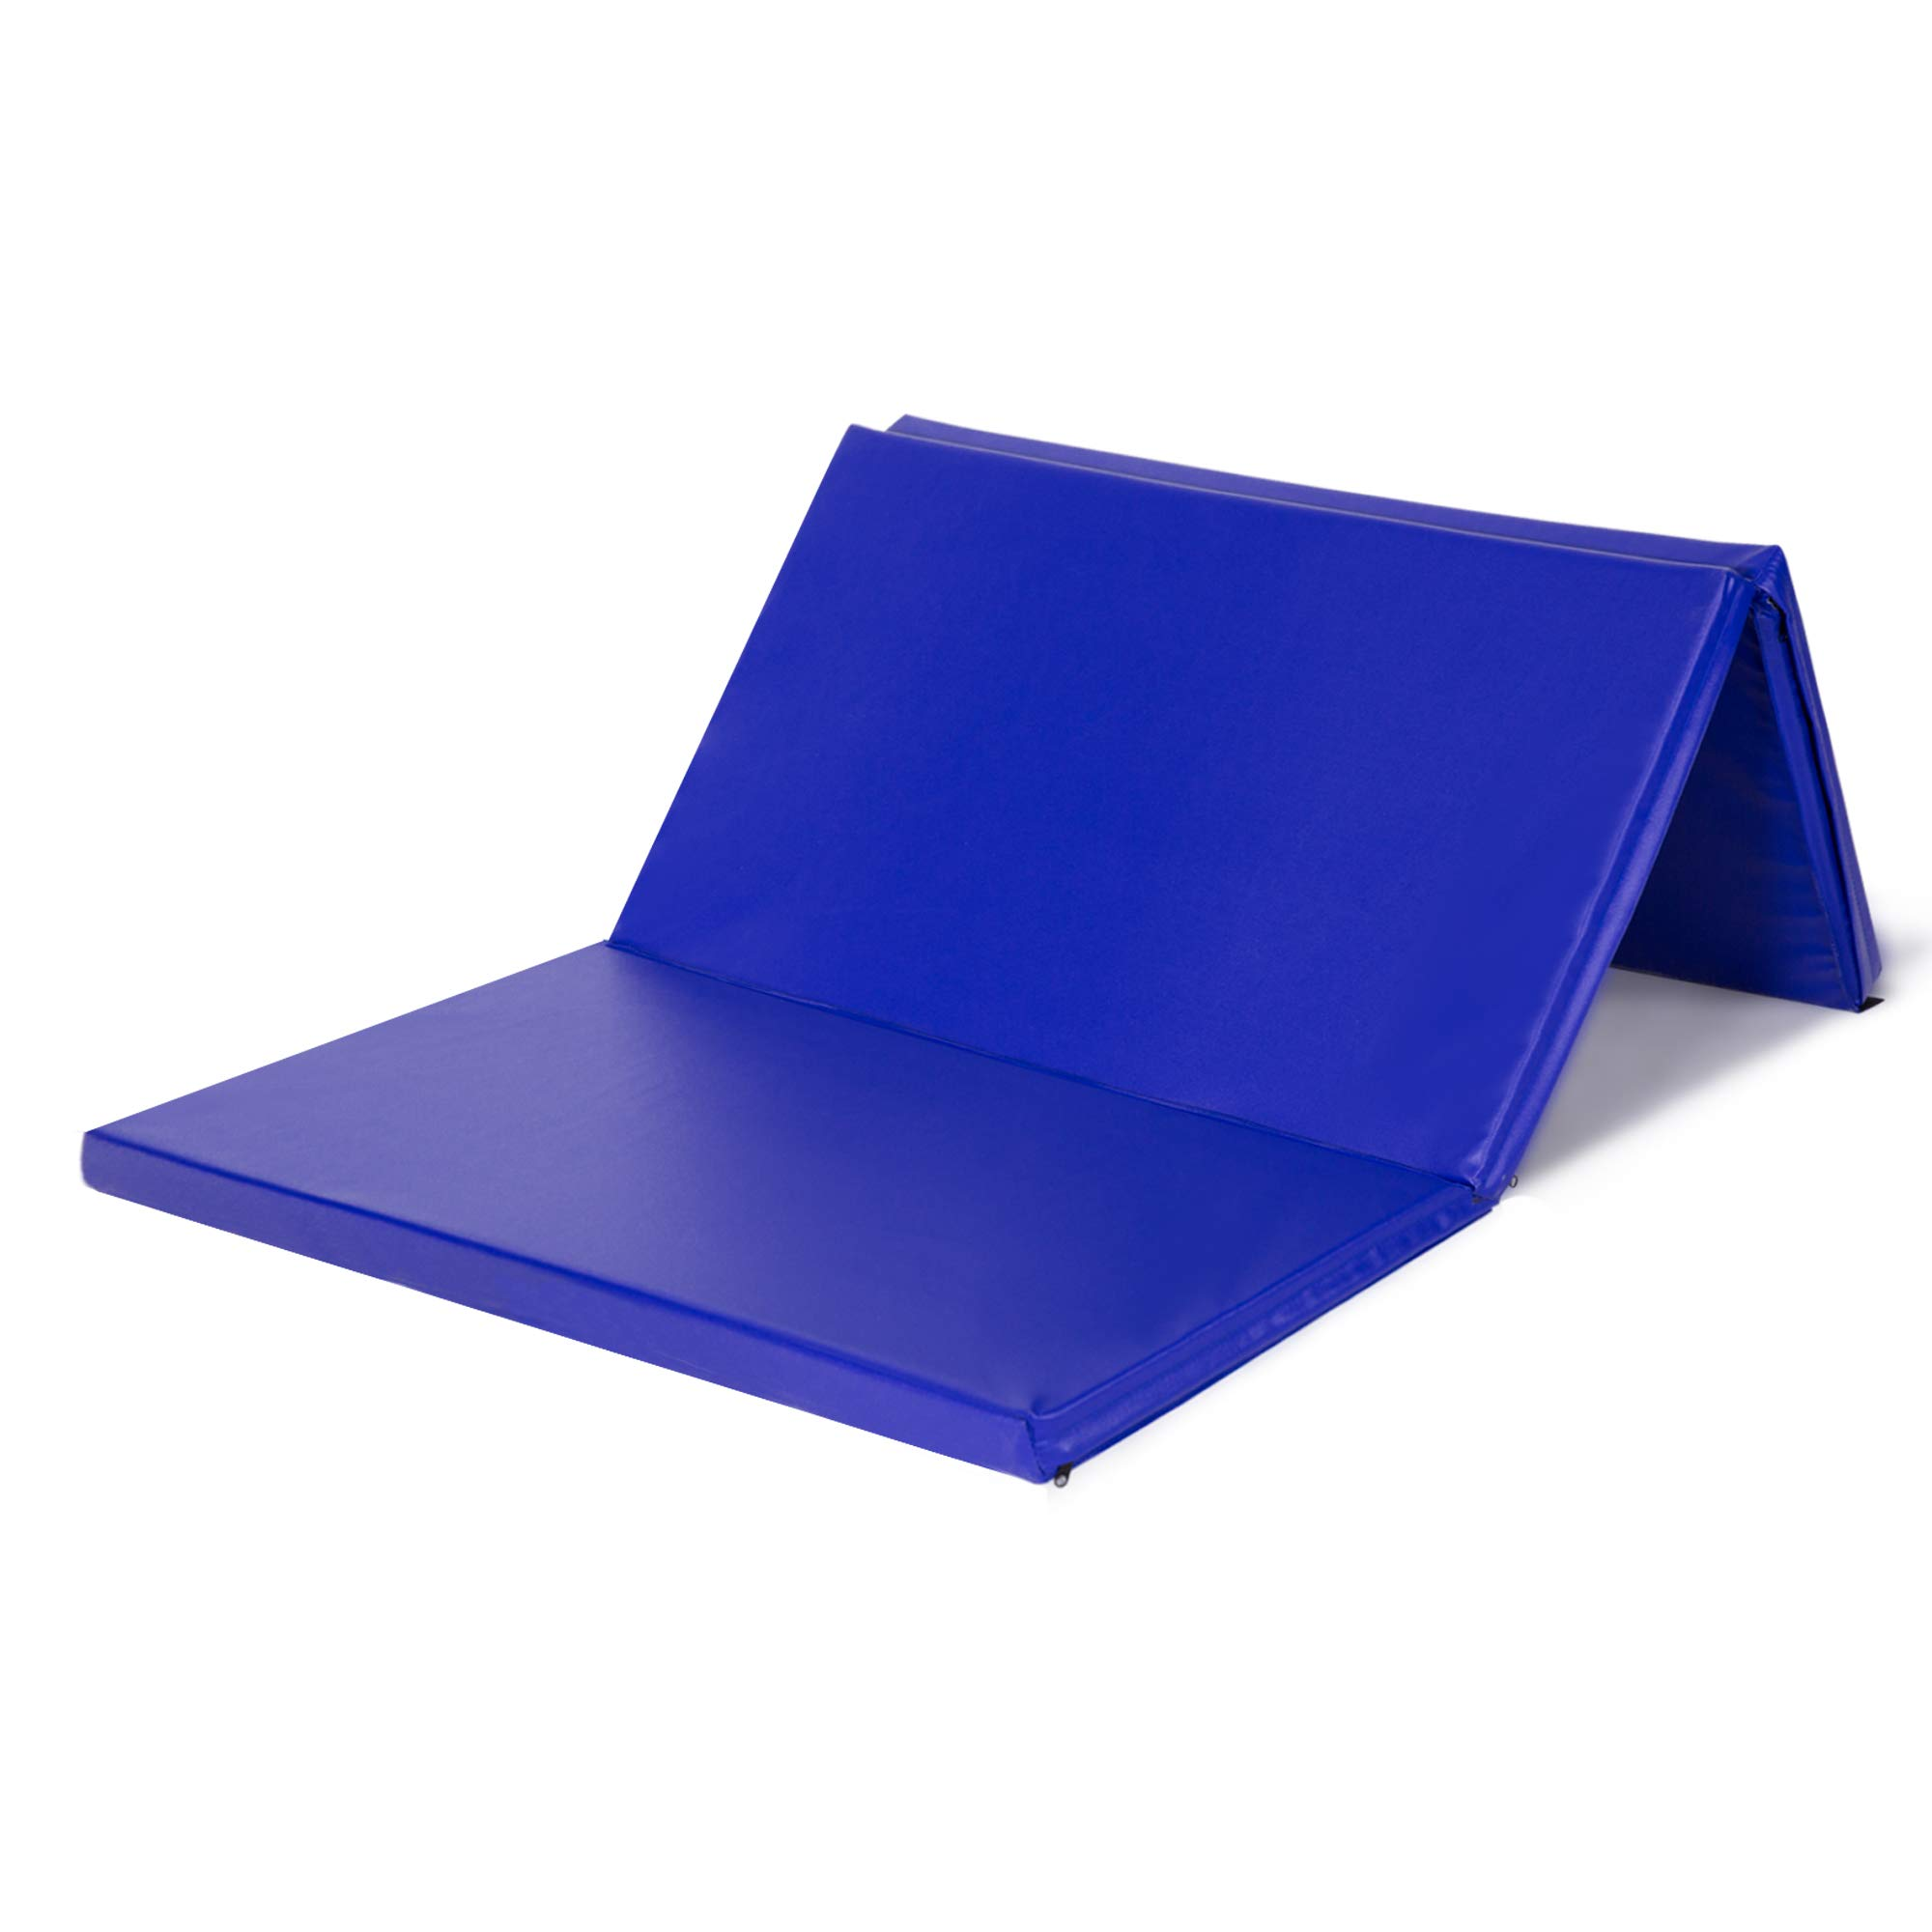 Homevibes 4'x6'x3 Gymnastics Tumbling Mat Thick Folding Panel Martial Art Mats Gift for Home Gym Fitness Exercise Crossfit Training, Blue